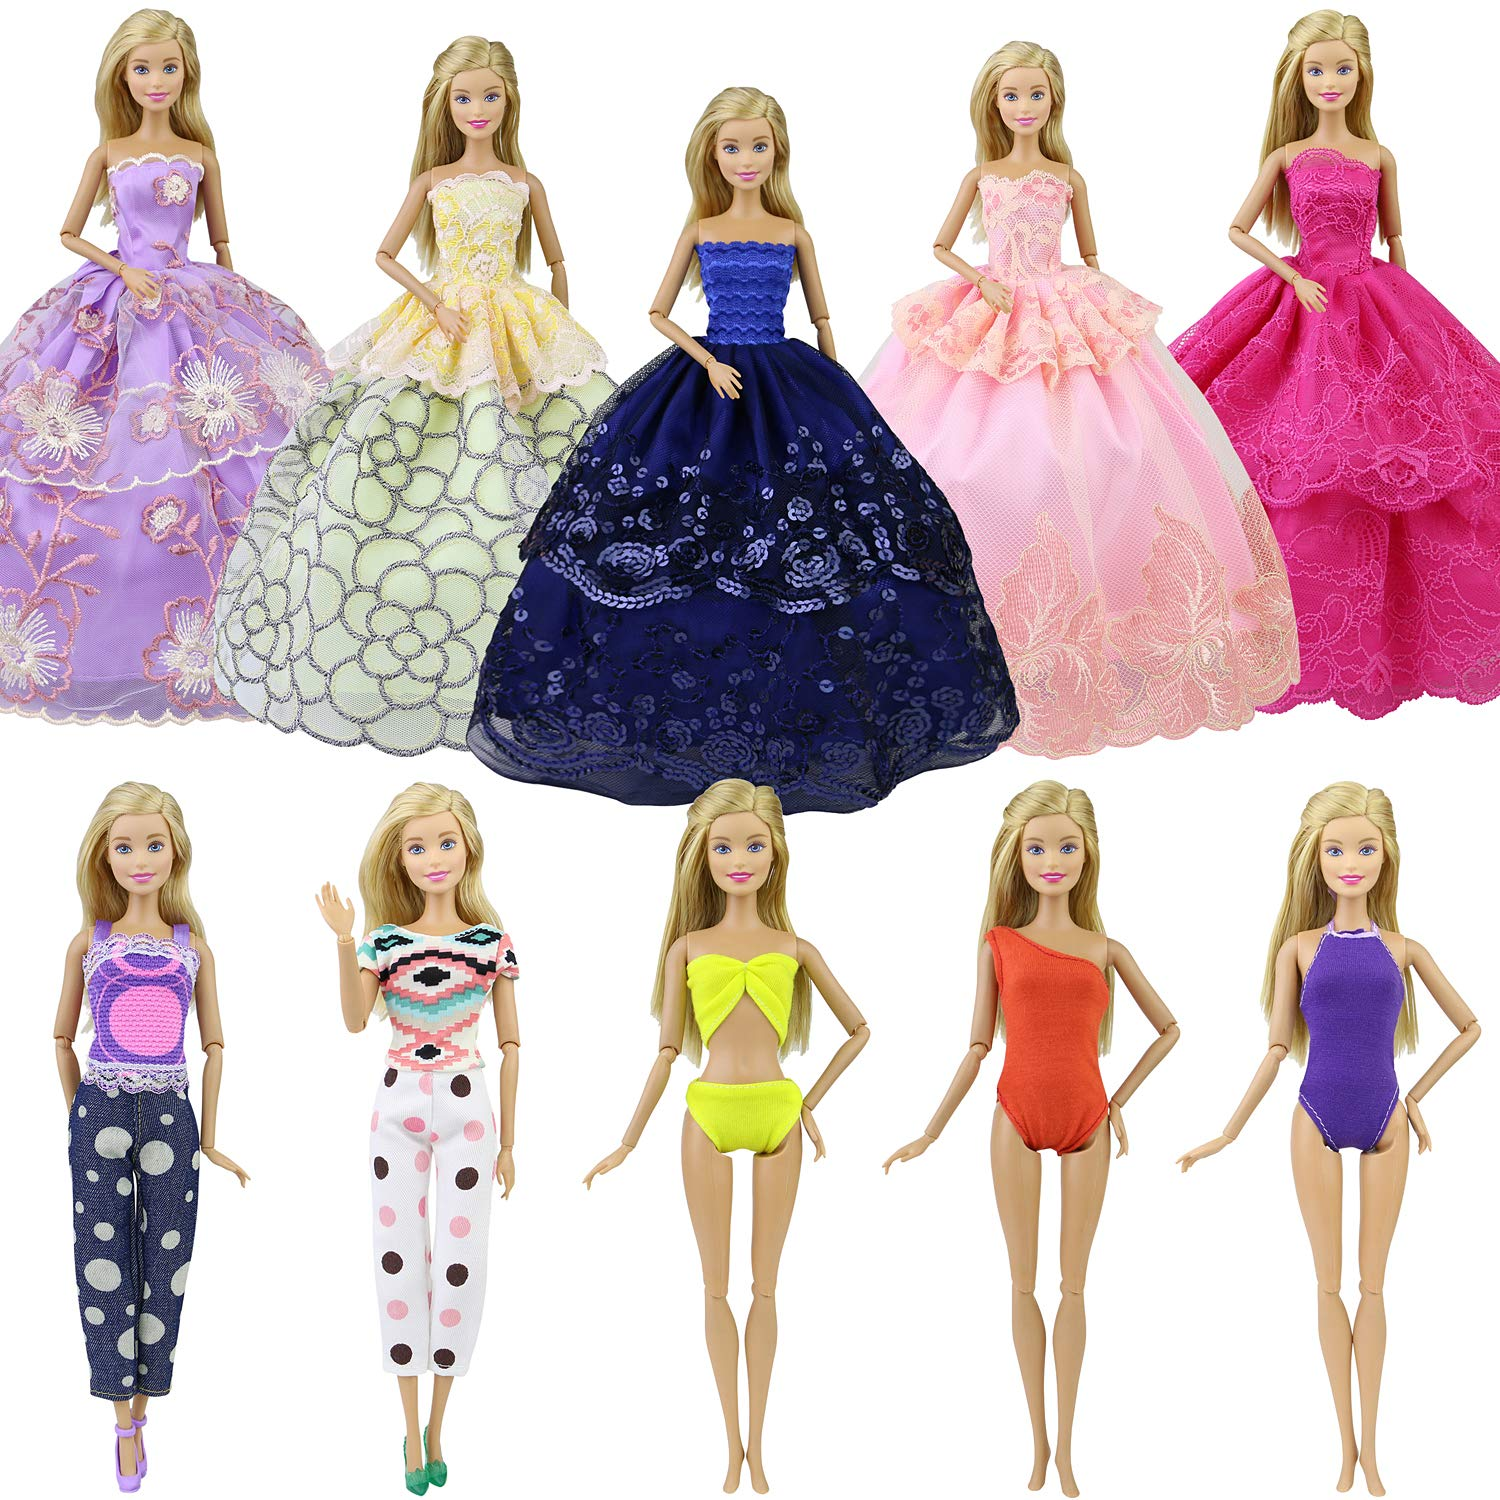 Ecore Fun Lot 10 Item 5 Pcs Fashion Handmade Dresses 2 Sets Casual Wear Clothes Outfit 3 Sets Swimsuits for 11.5 Inch Doll Xmas Birthday Gift Present Random Style